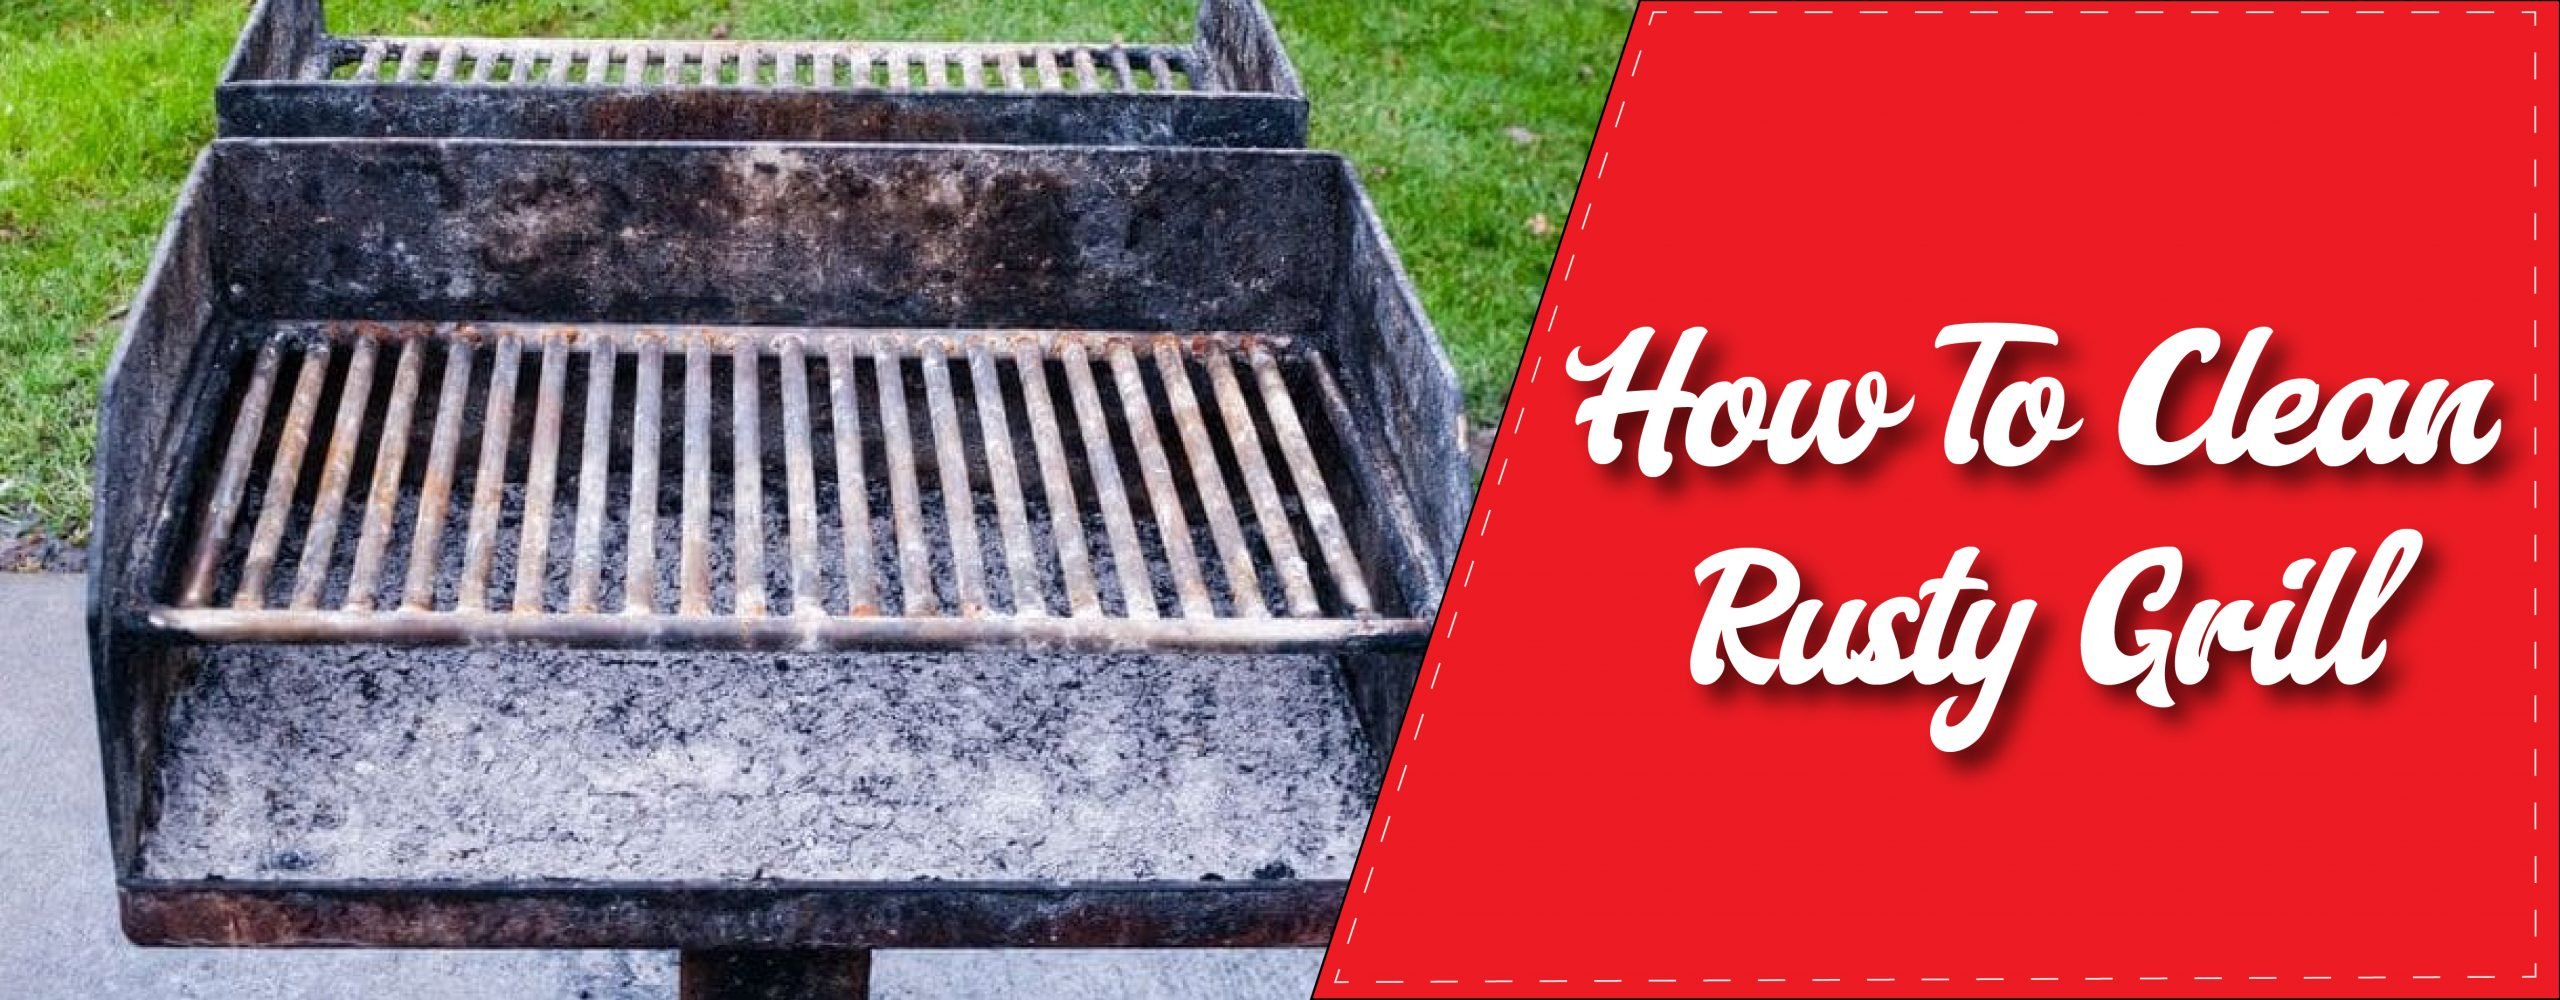 How To Clean Rusty Grill